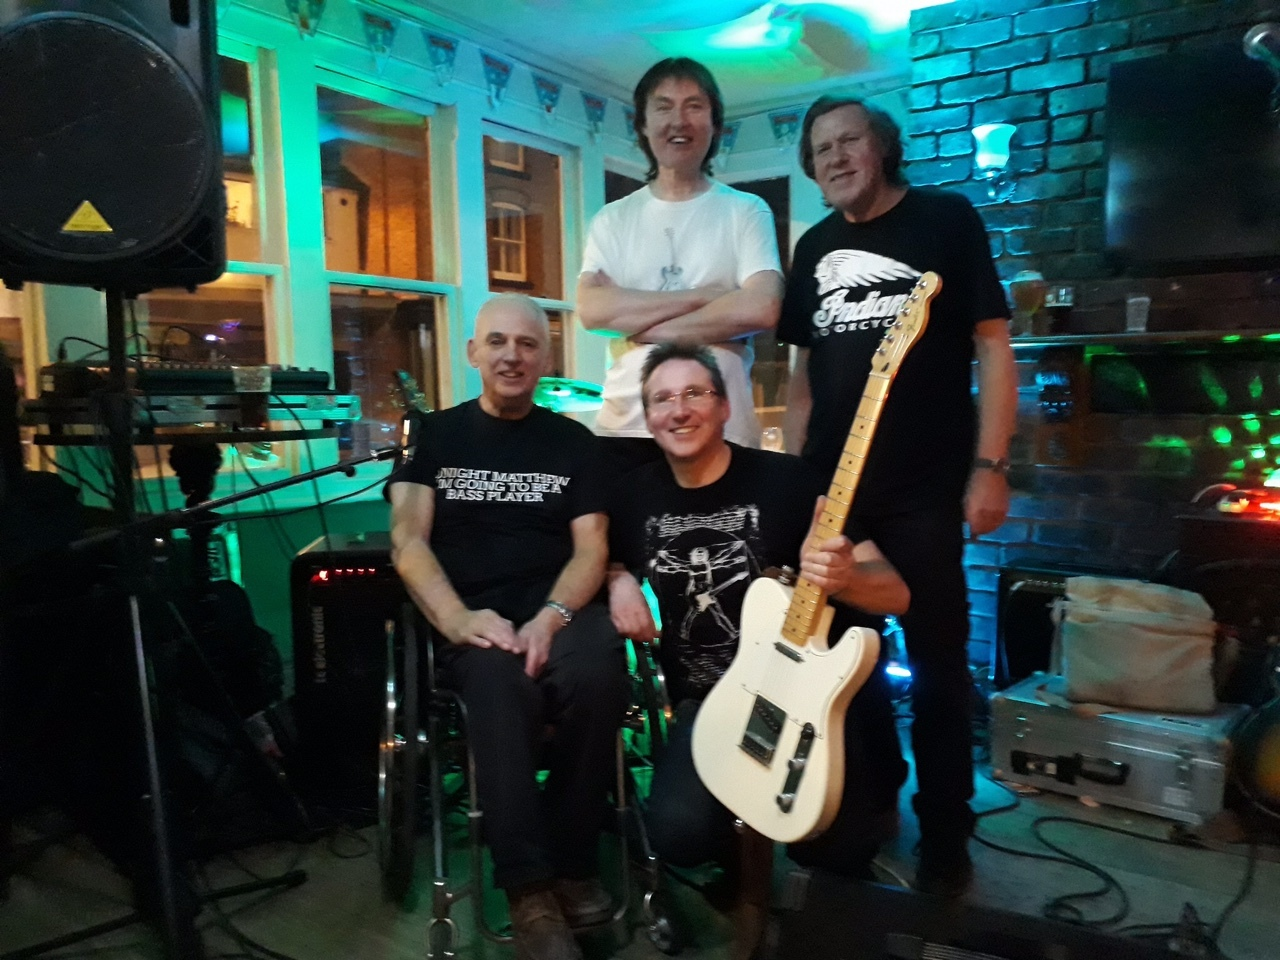 Monterey Jack and the Malcontents will be one of the acts at the variety concert on October 12 in The Memorial Hall, Oswestry.